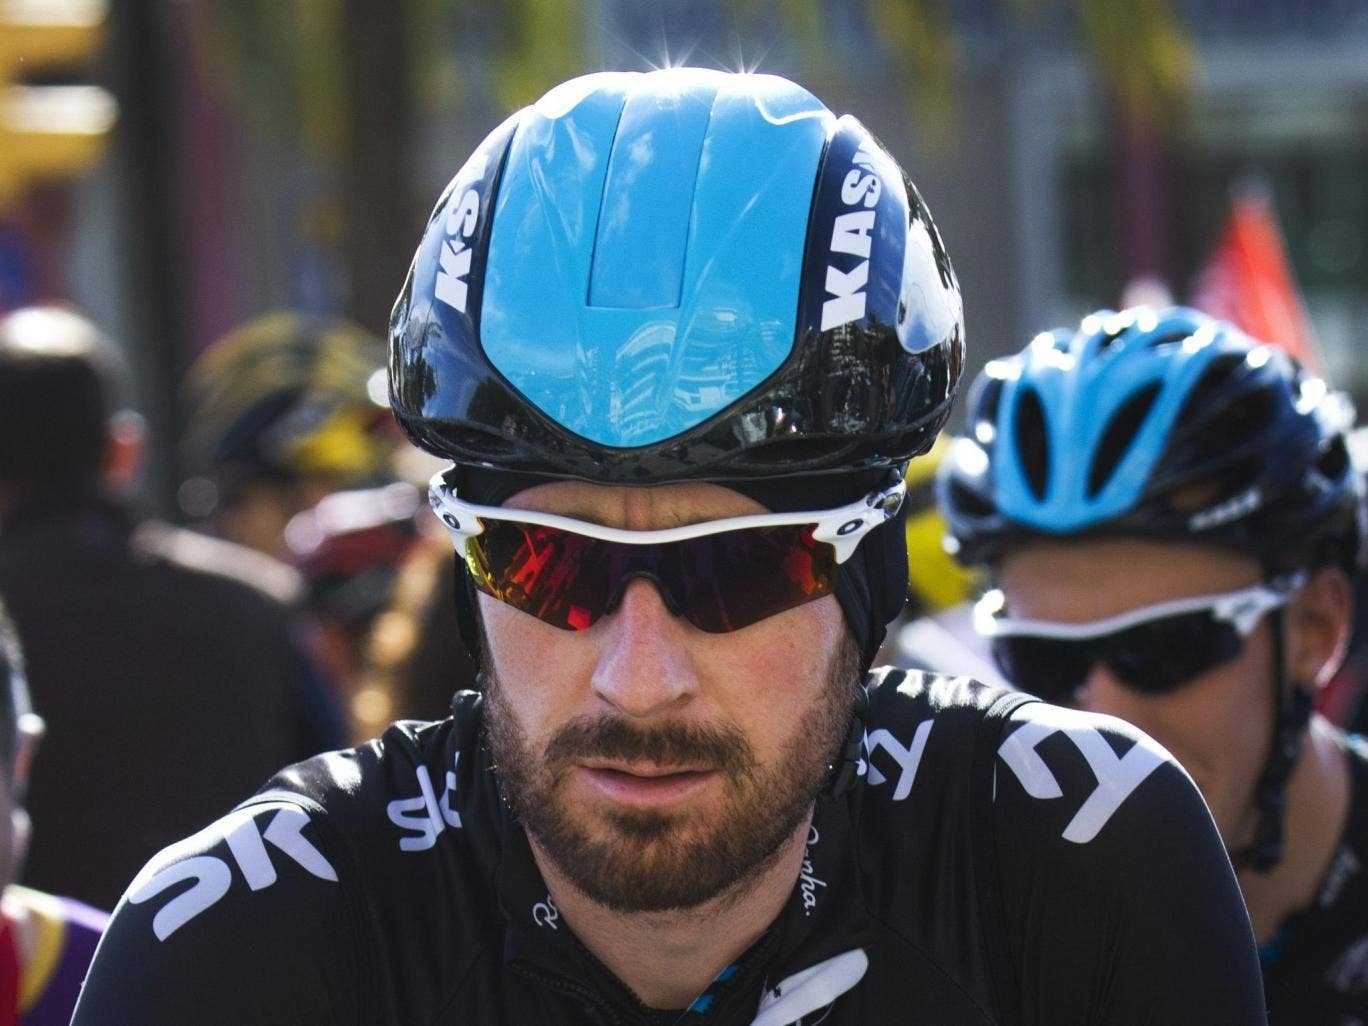 Sir Bradley Wiggins is expected to take part in his first race of 2014 today